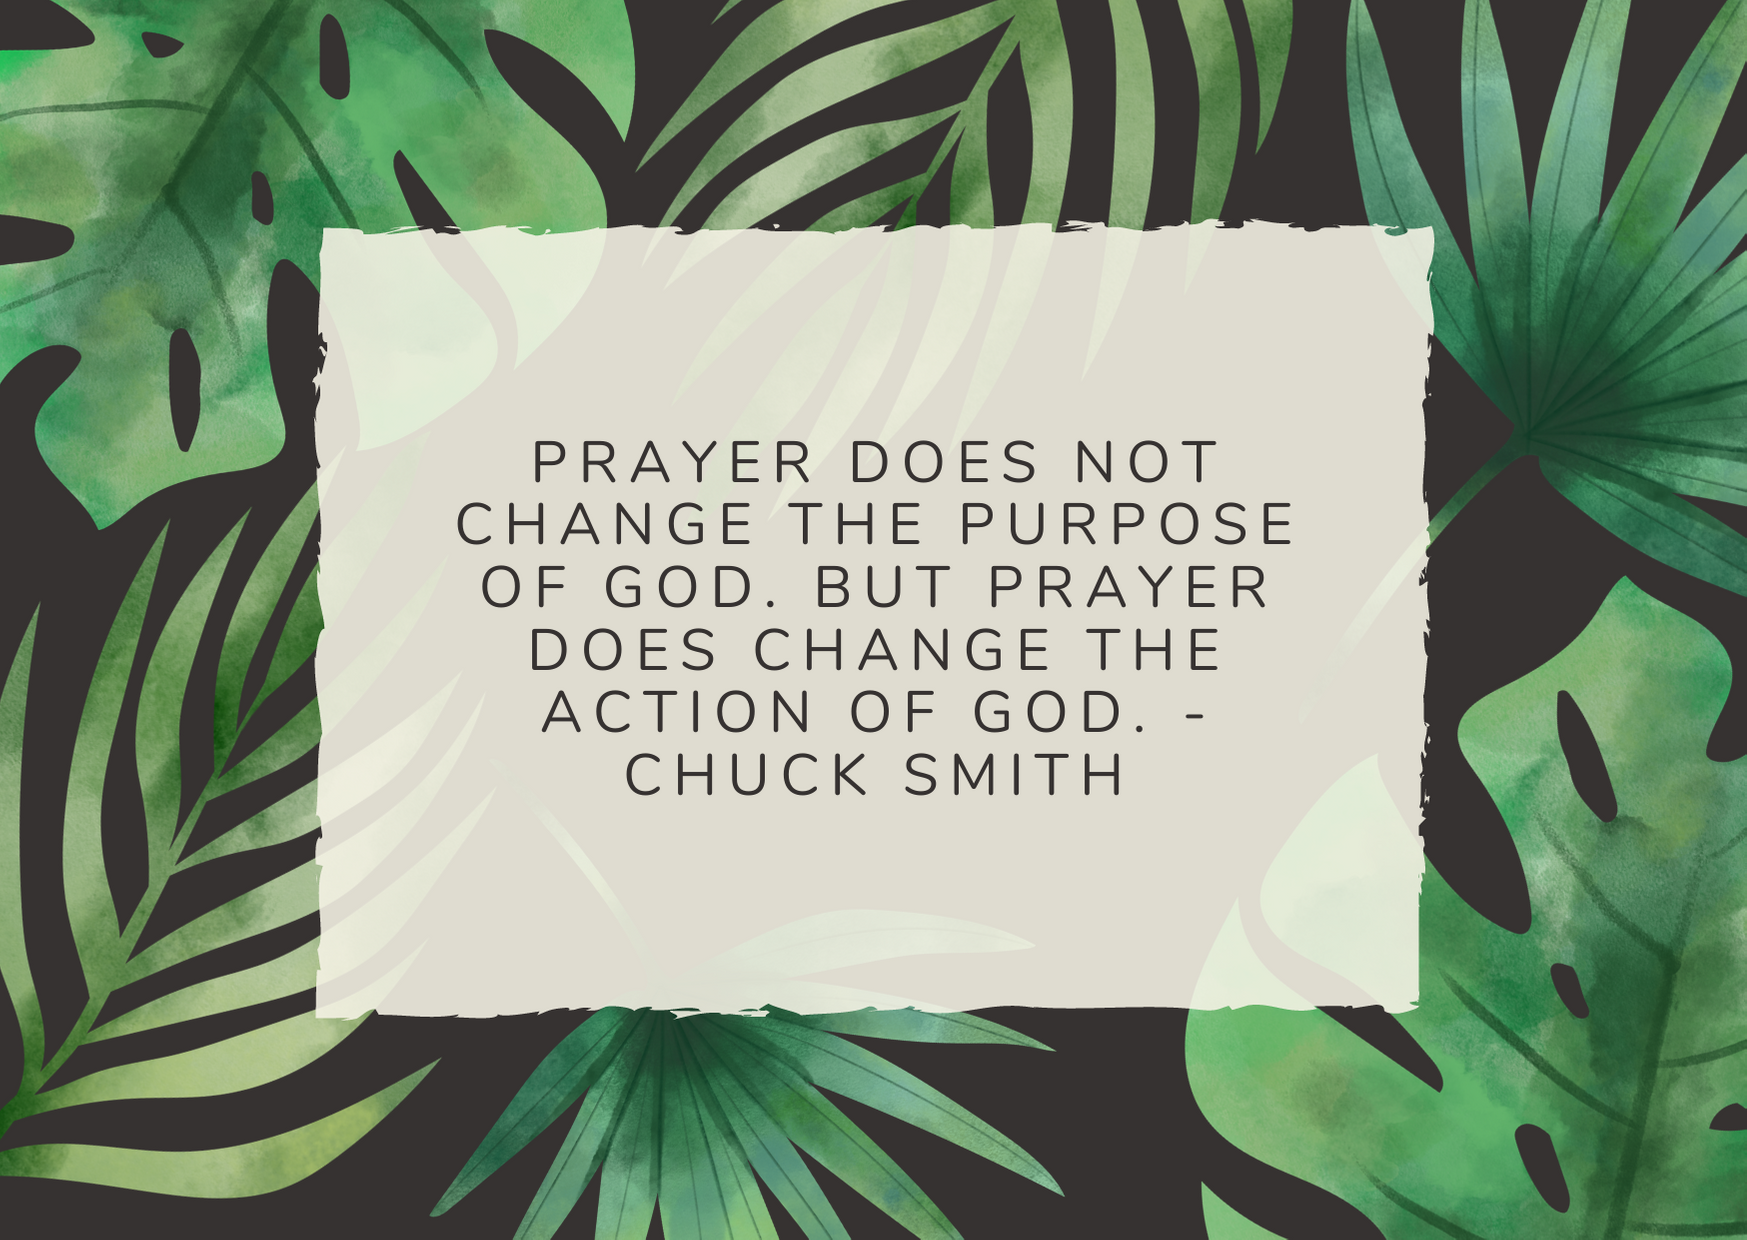 Prayer does not change the purpose of God. But prayer does change the action of God. - Chuck Smith